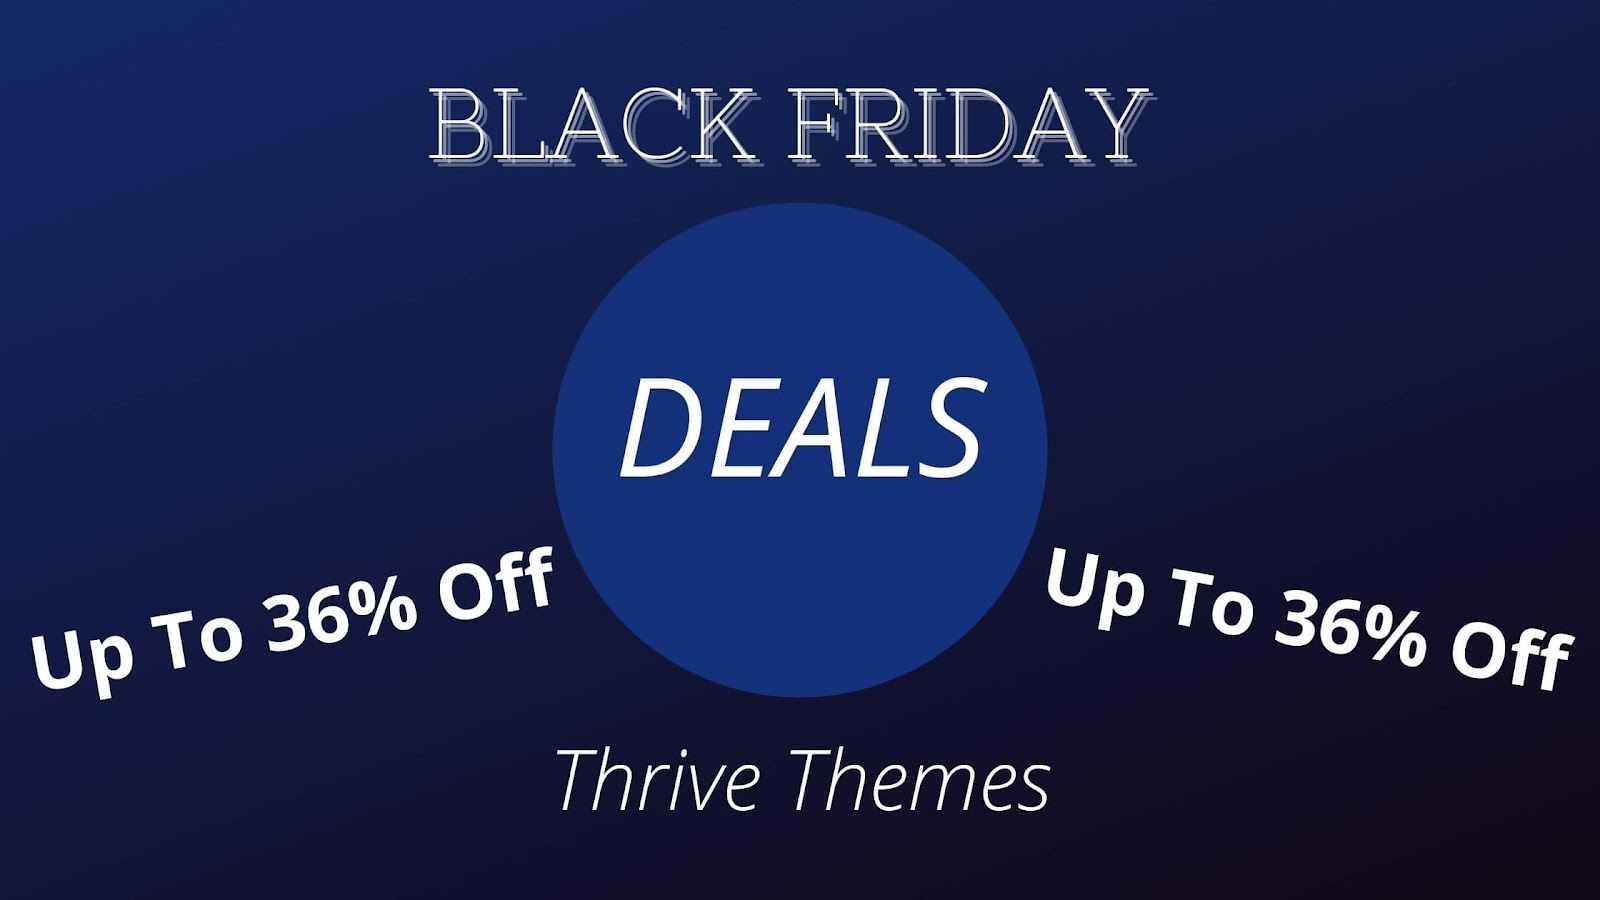 Thrive Themes: Get Up To 36% Off